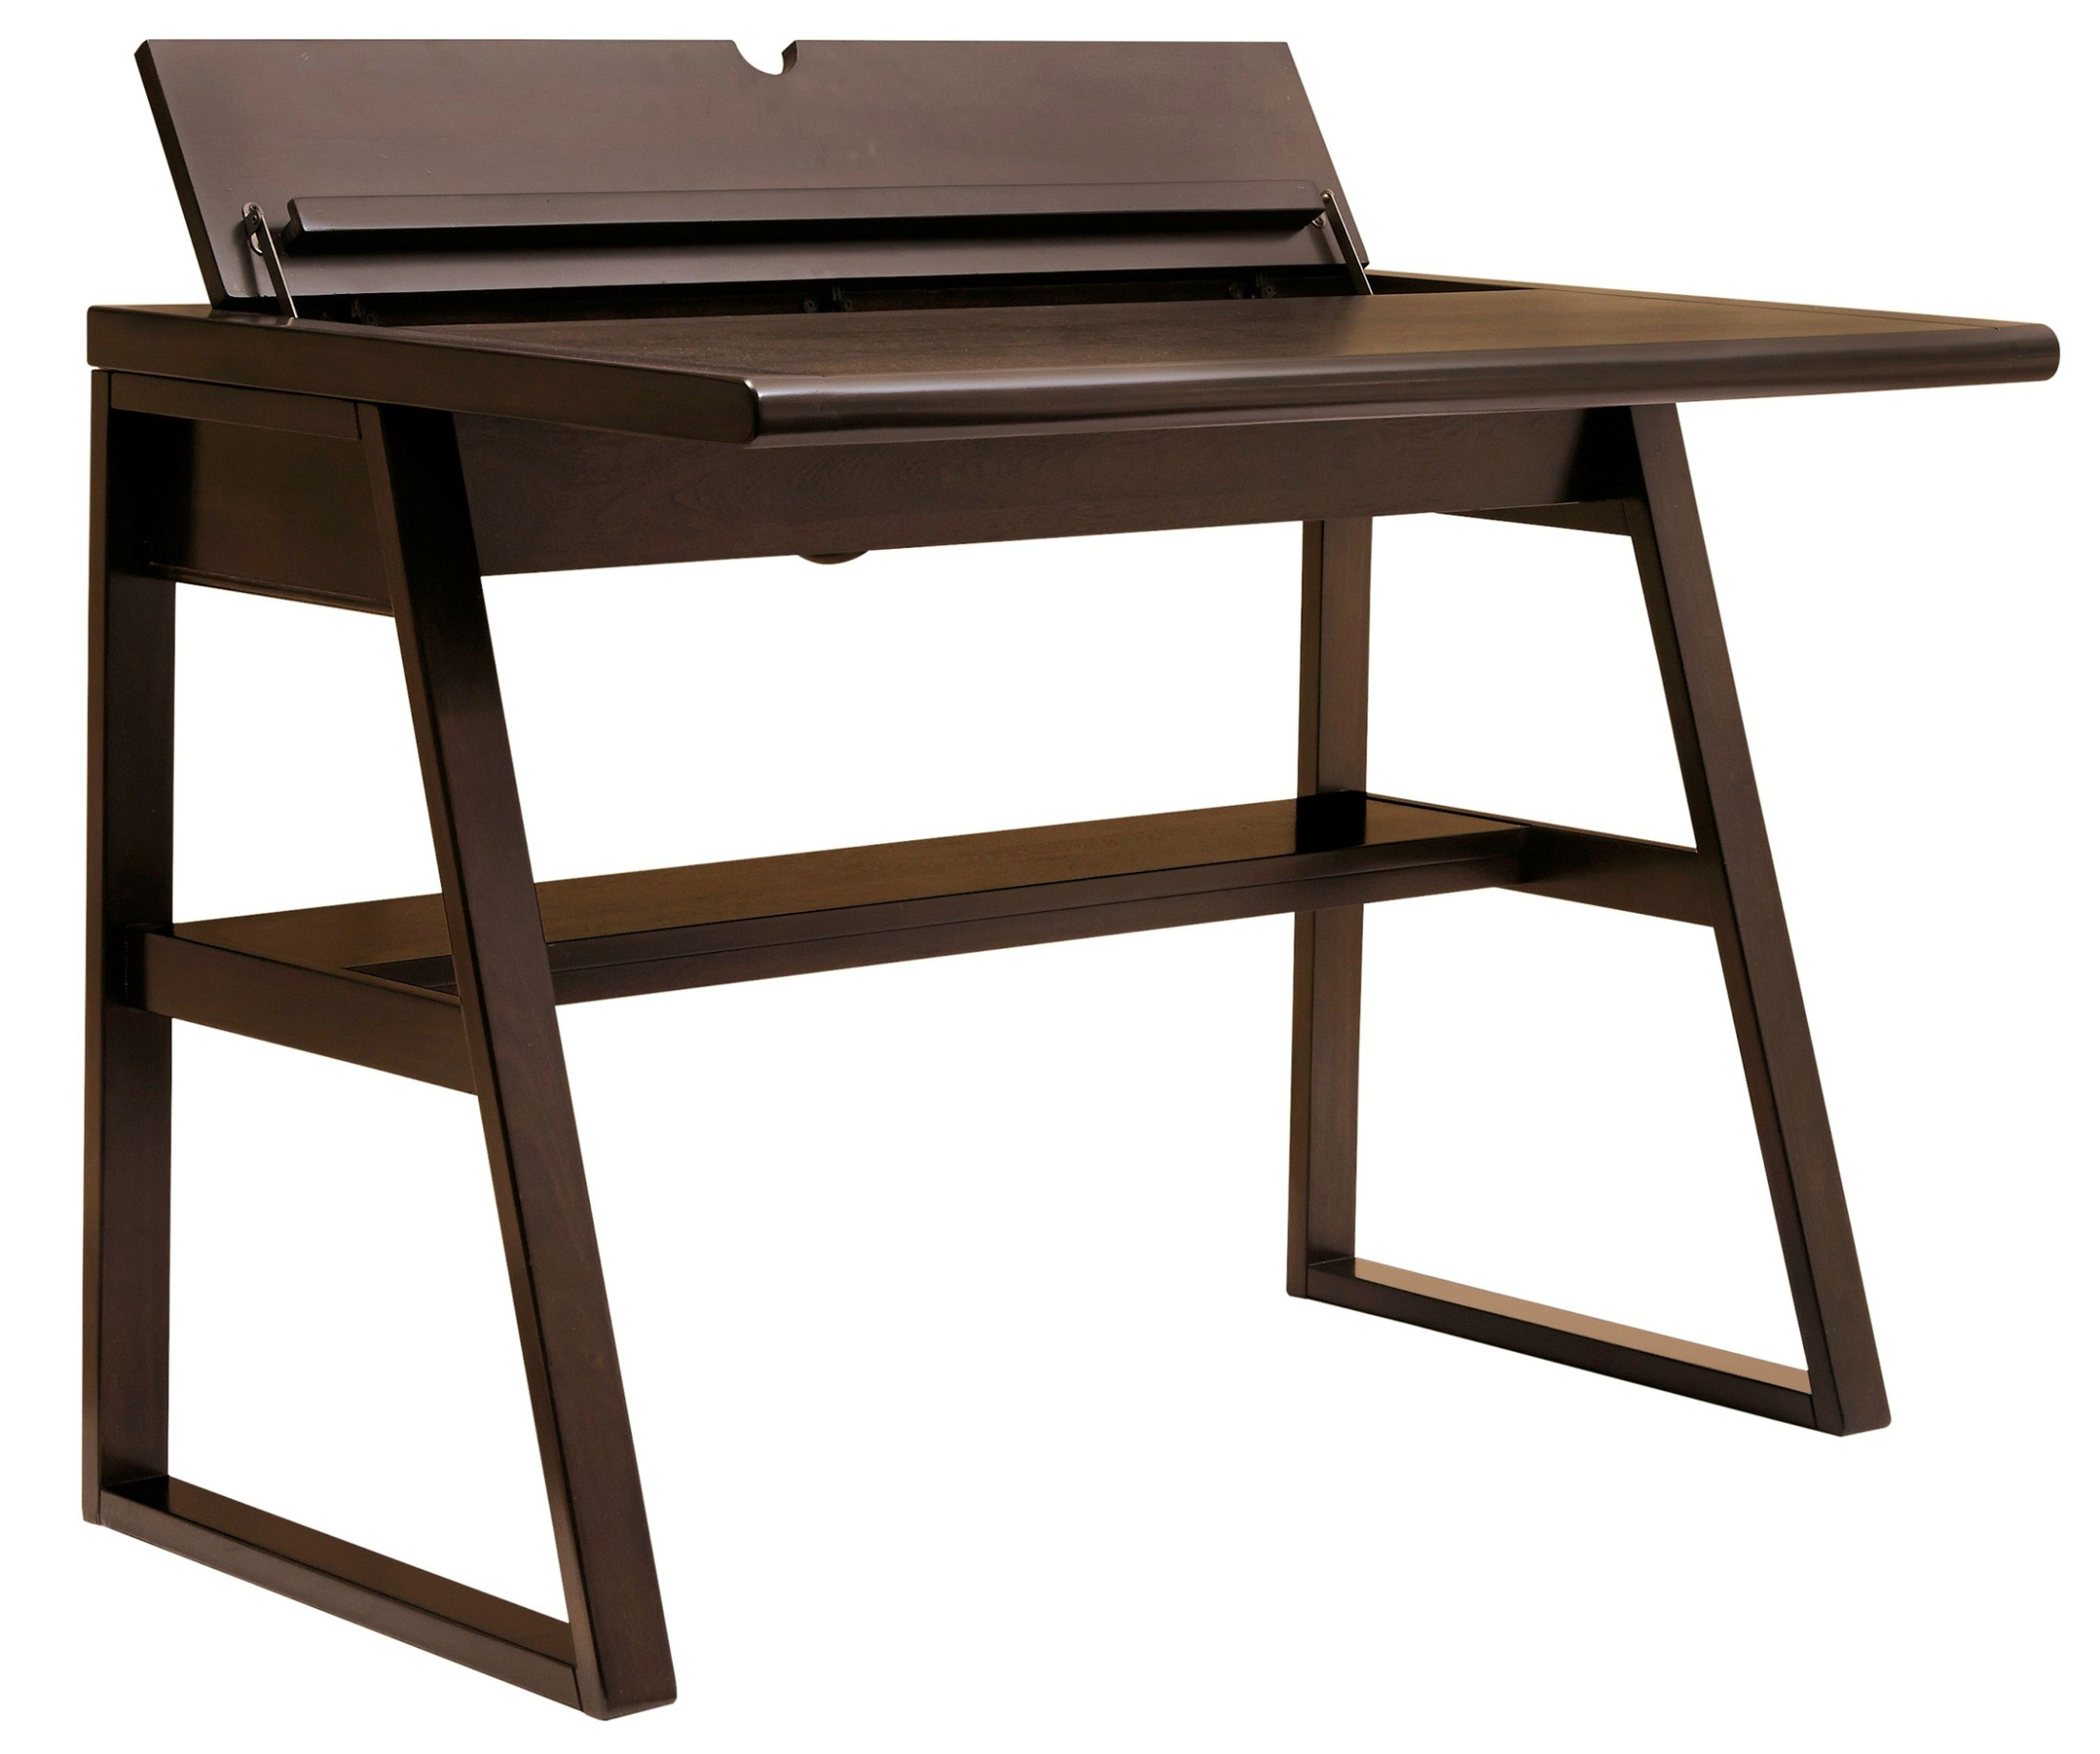 Chanella Home Office Desk From Ashley H582 10 Coleman Furniture